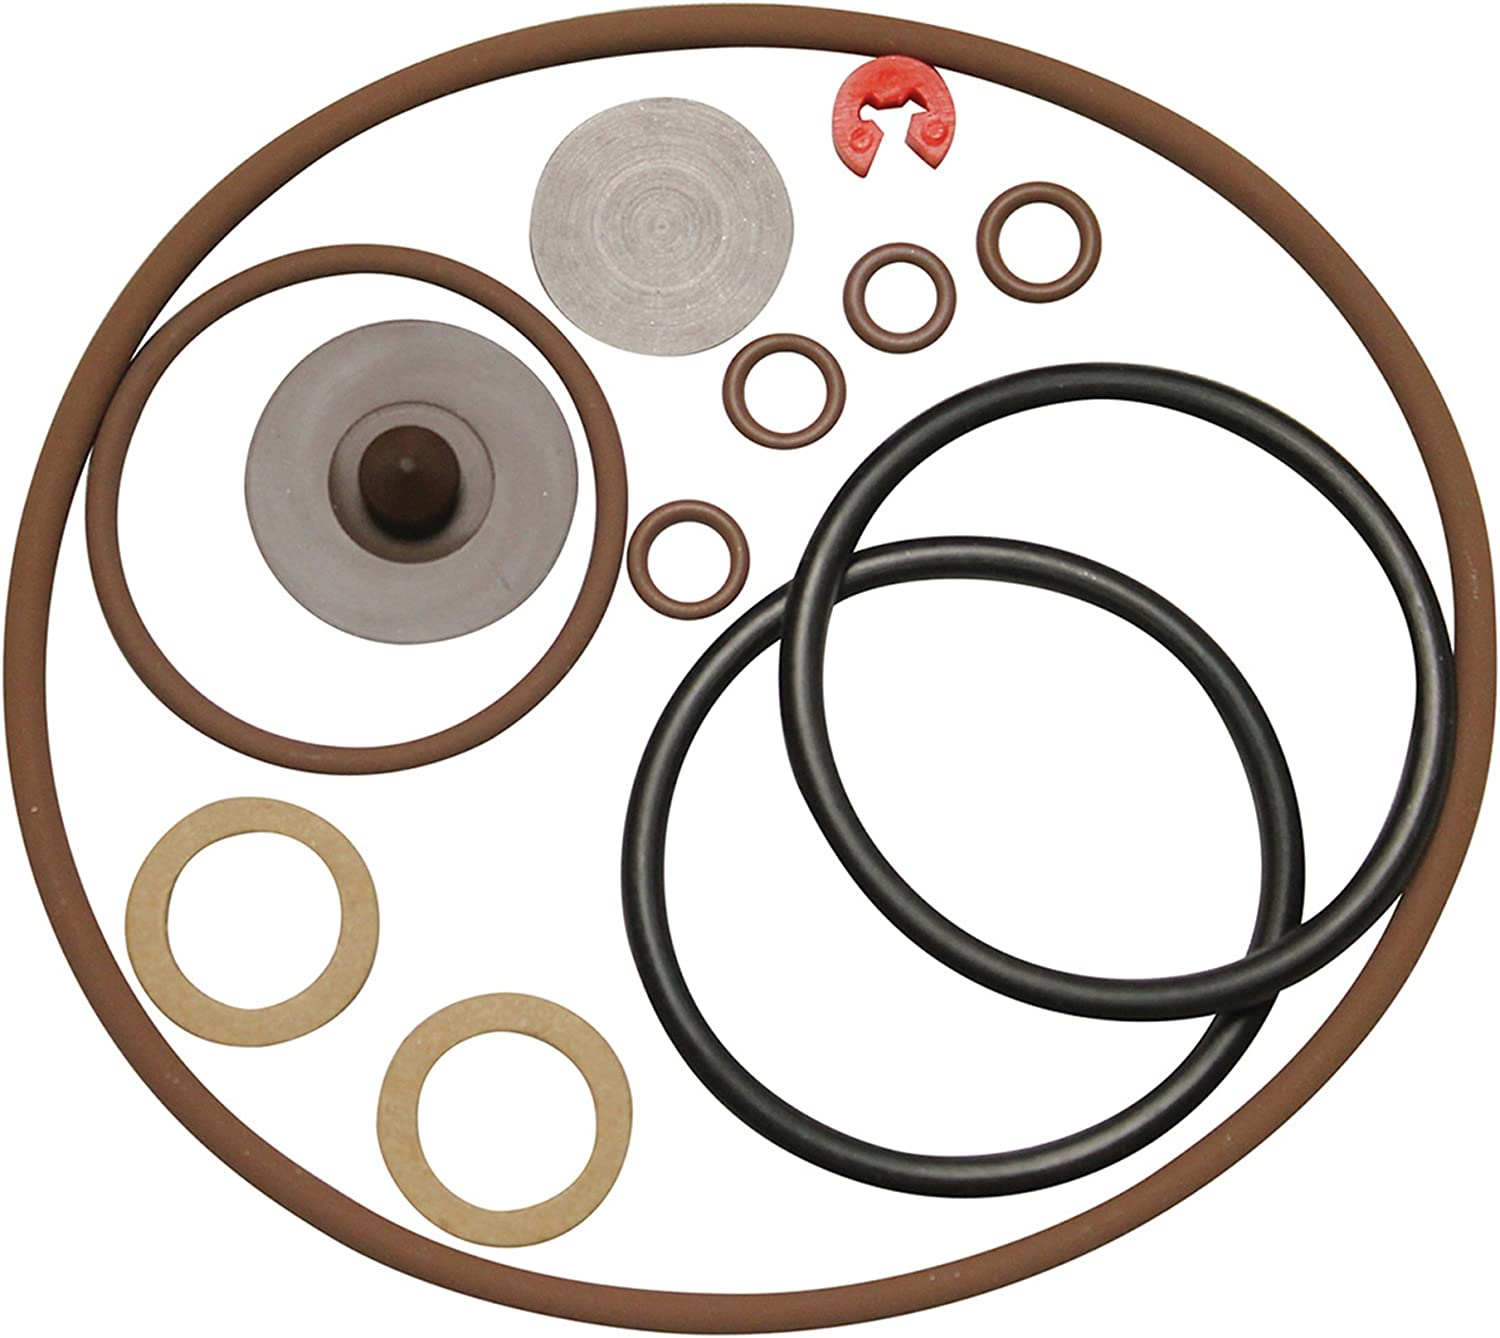 Chapin 6-5368 Pro Series Seal Kit For Chapin ProSeries Sprayers